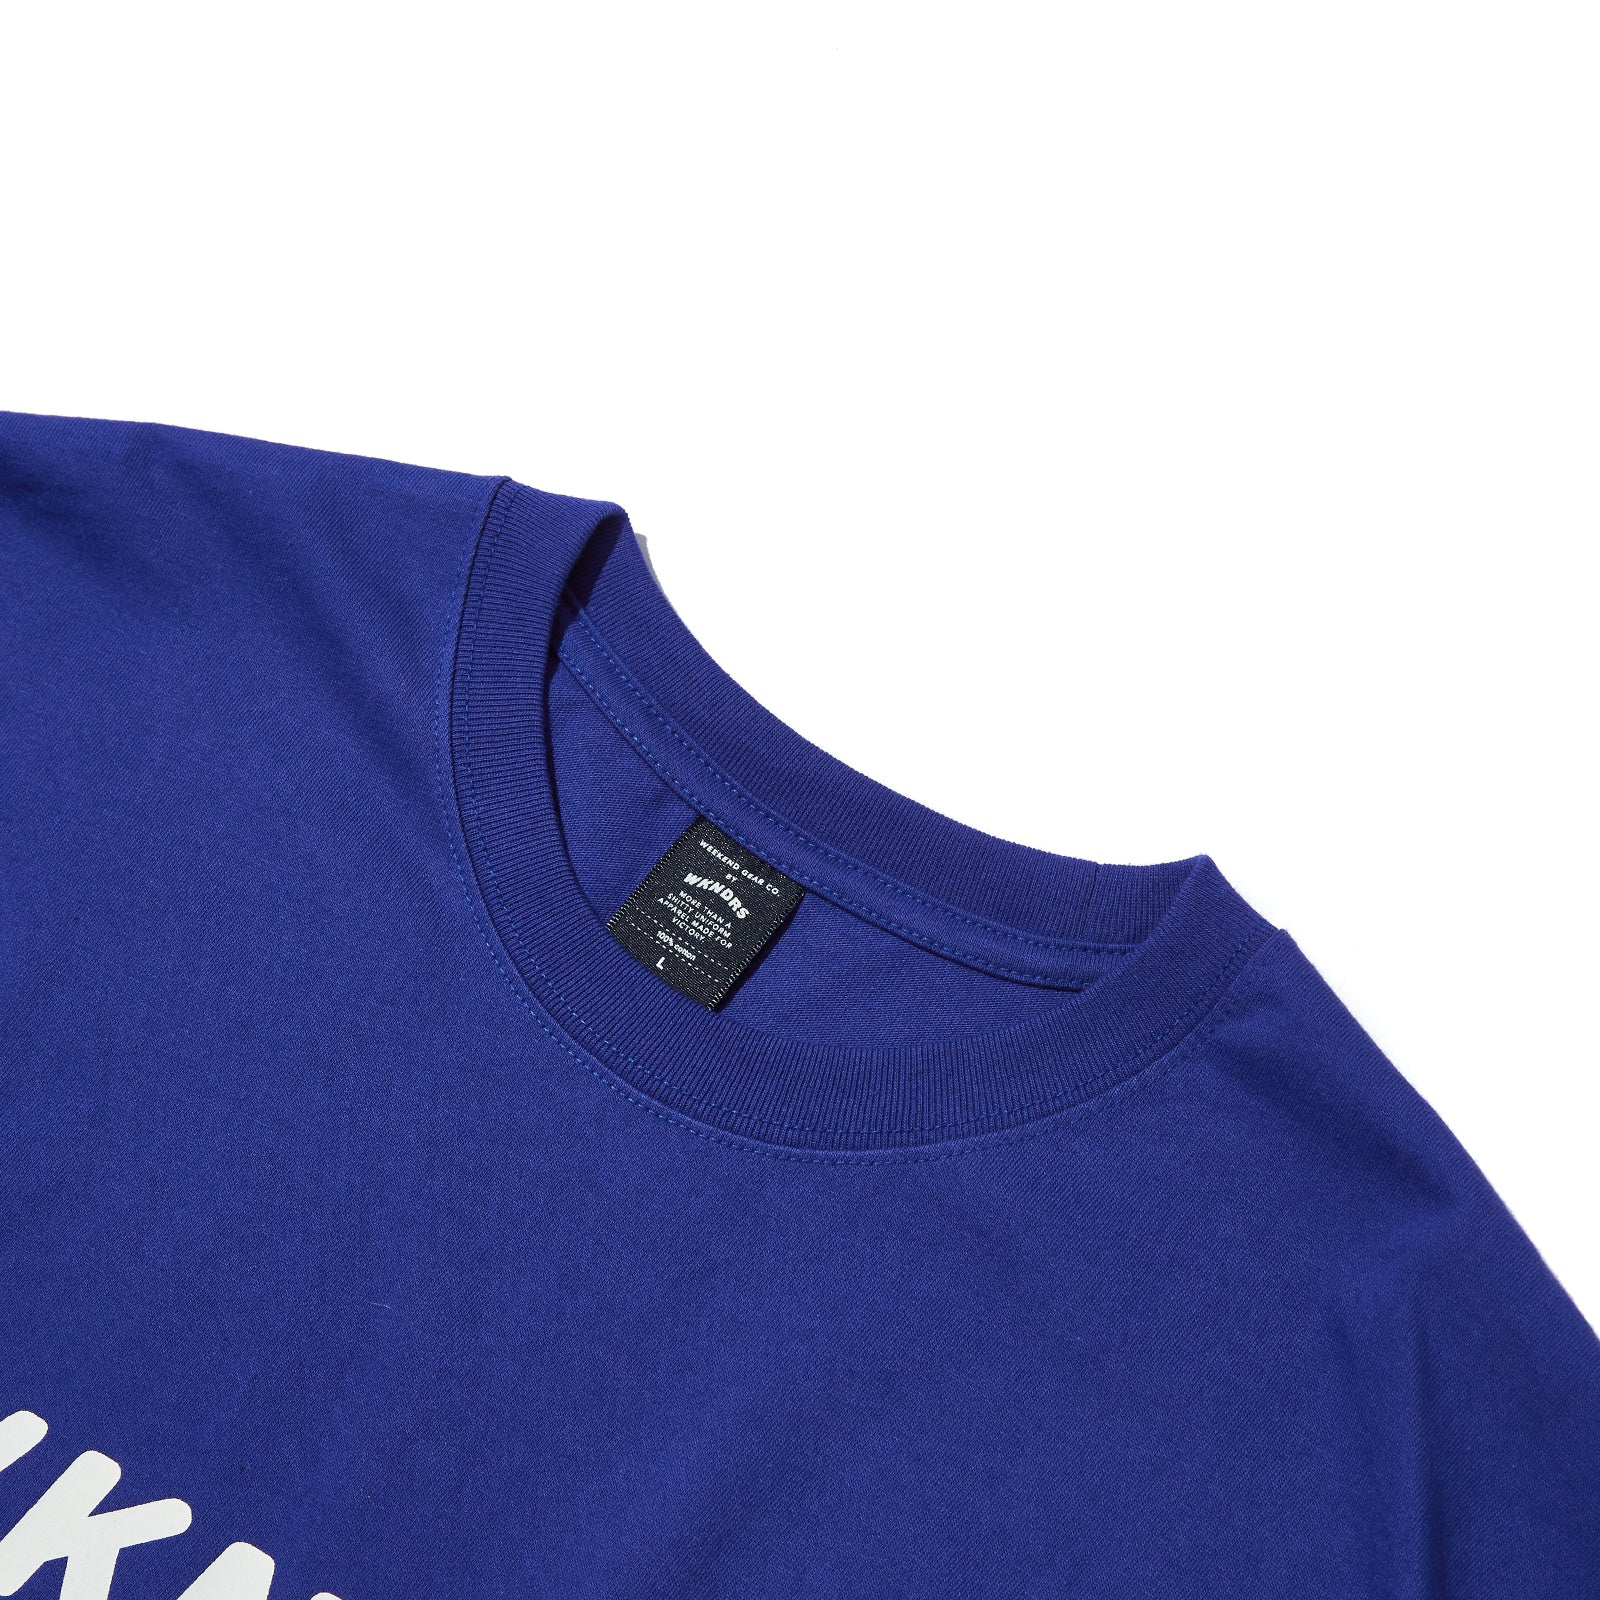 BASIC LOGO LS T-SHIRT (BLUE)